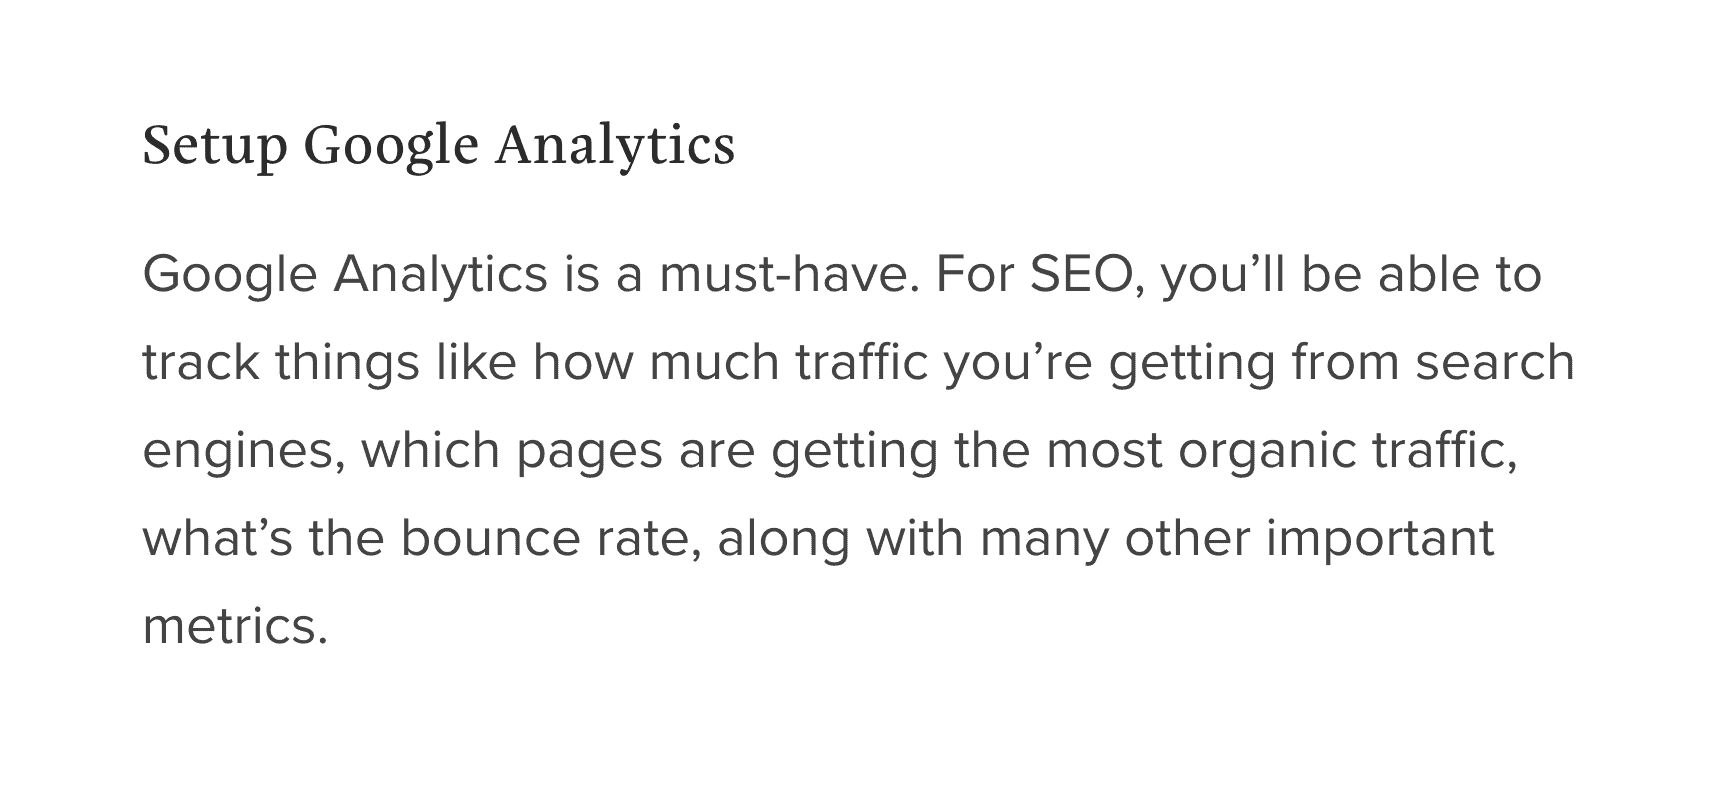 Other SEO Checklist content had steps